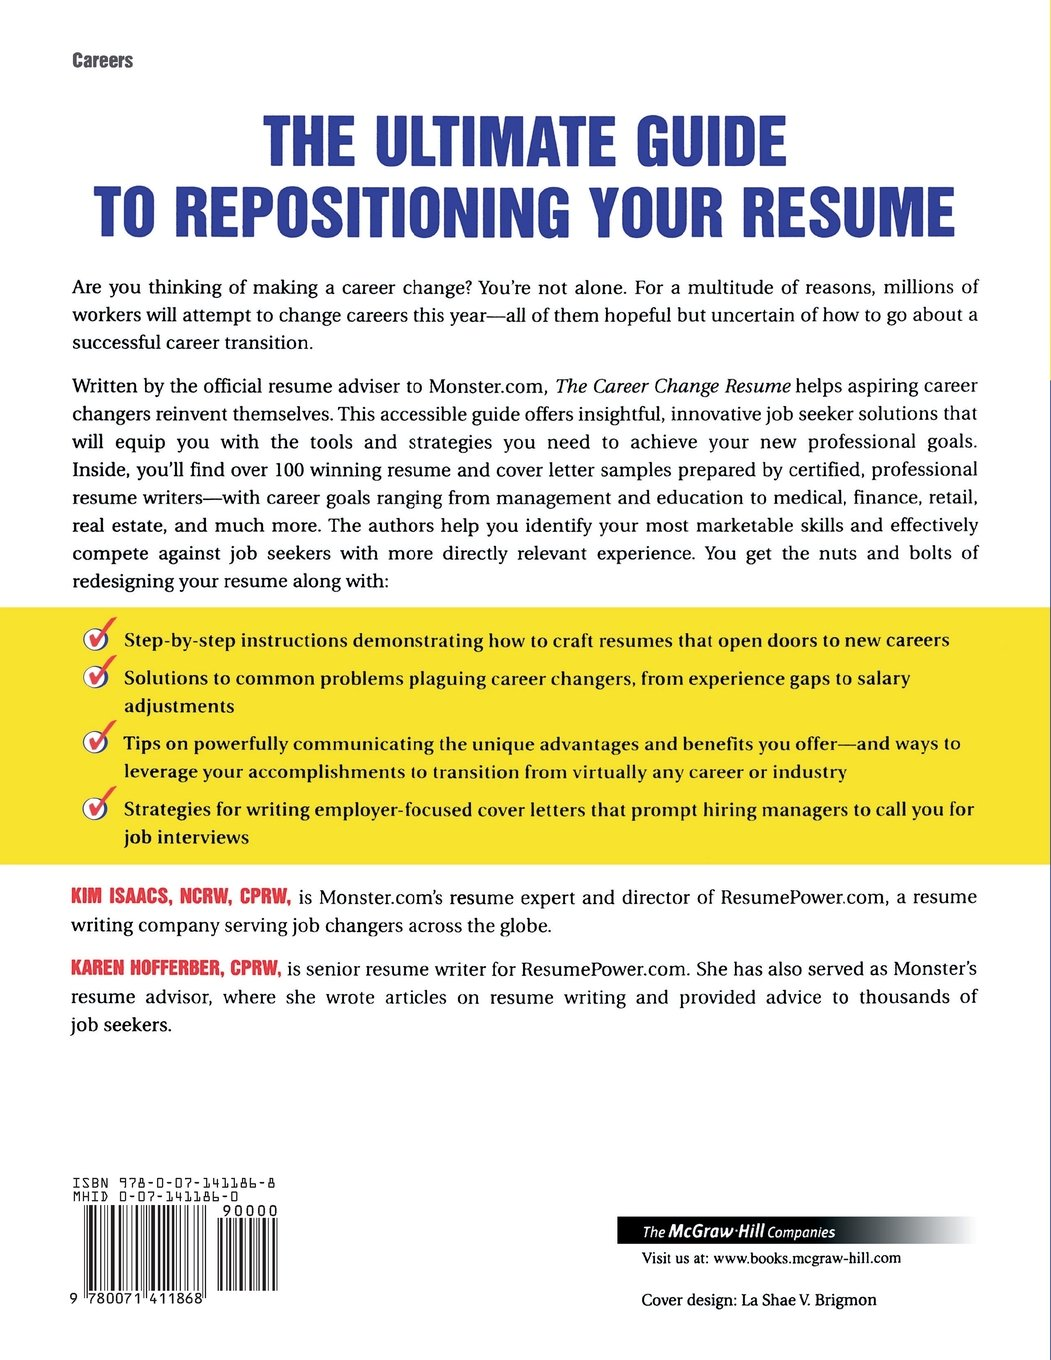 Trying to write a perfect resume will hurt your job search